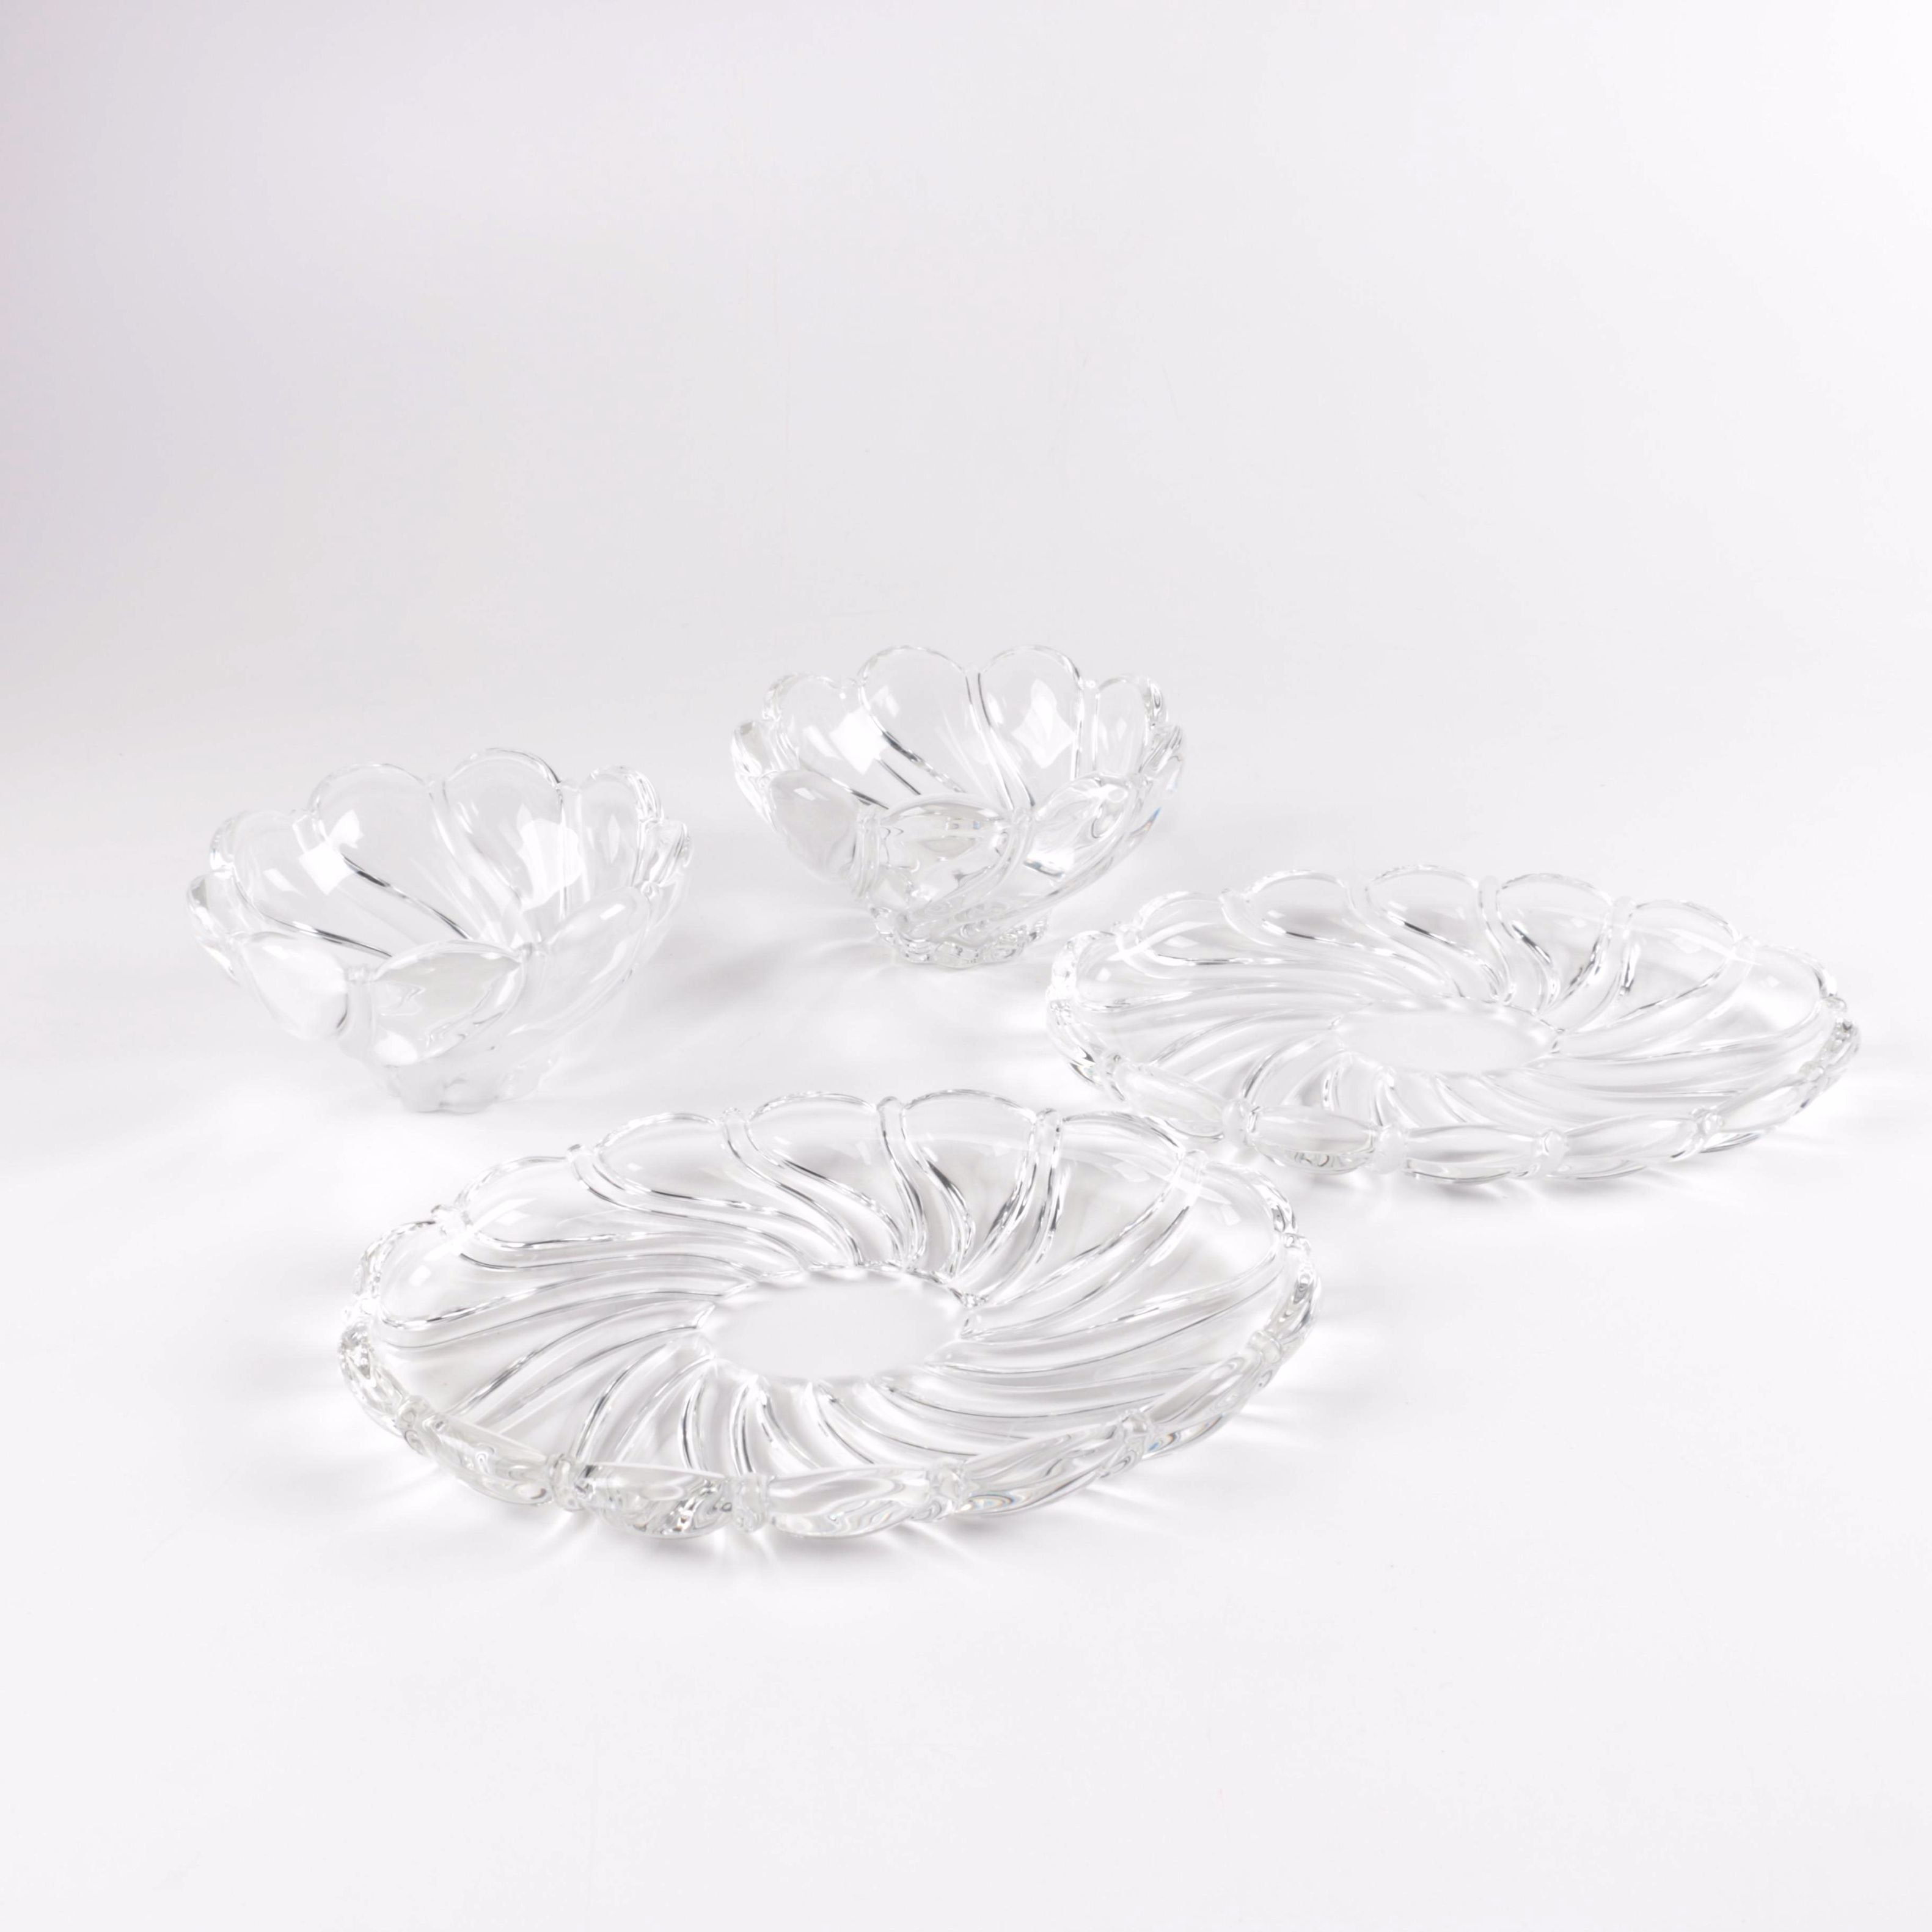 Pair of Small Crystal Bowls and Saucers